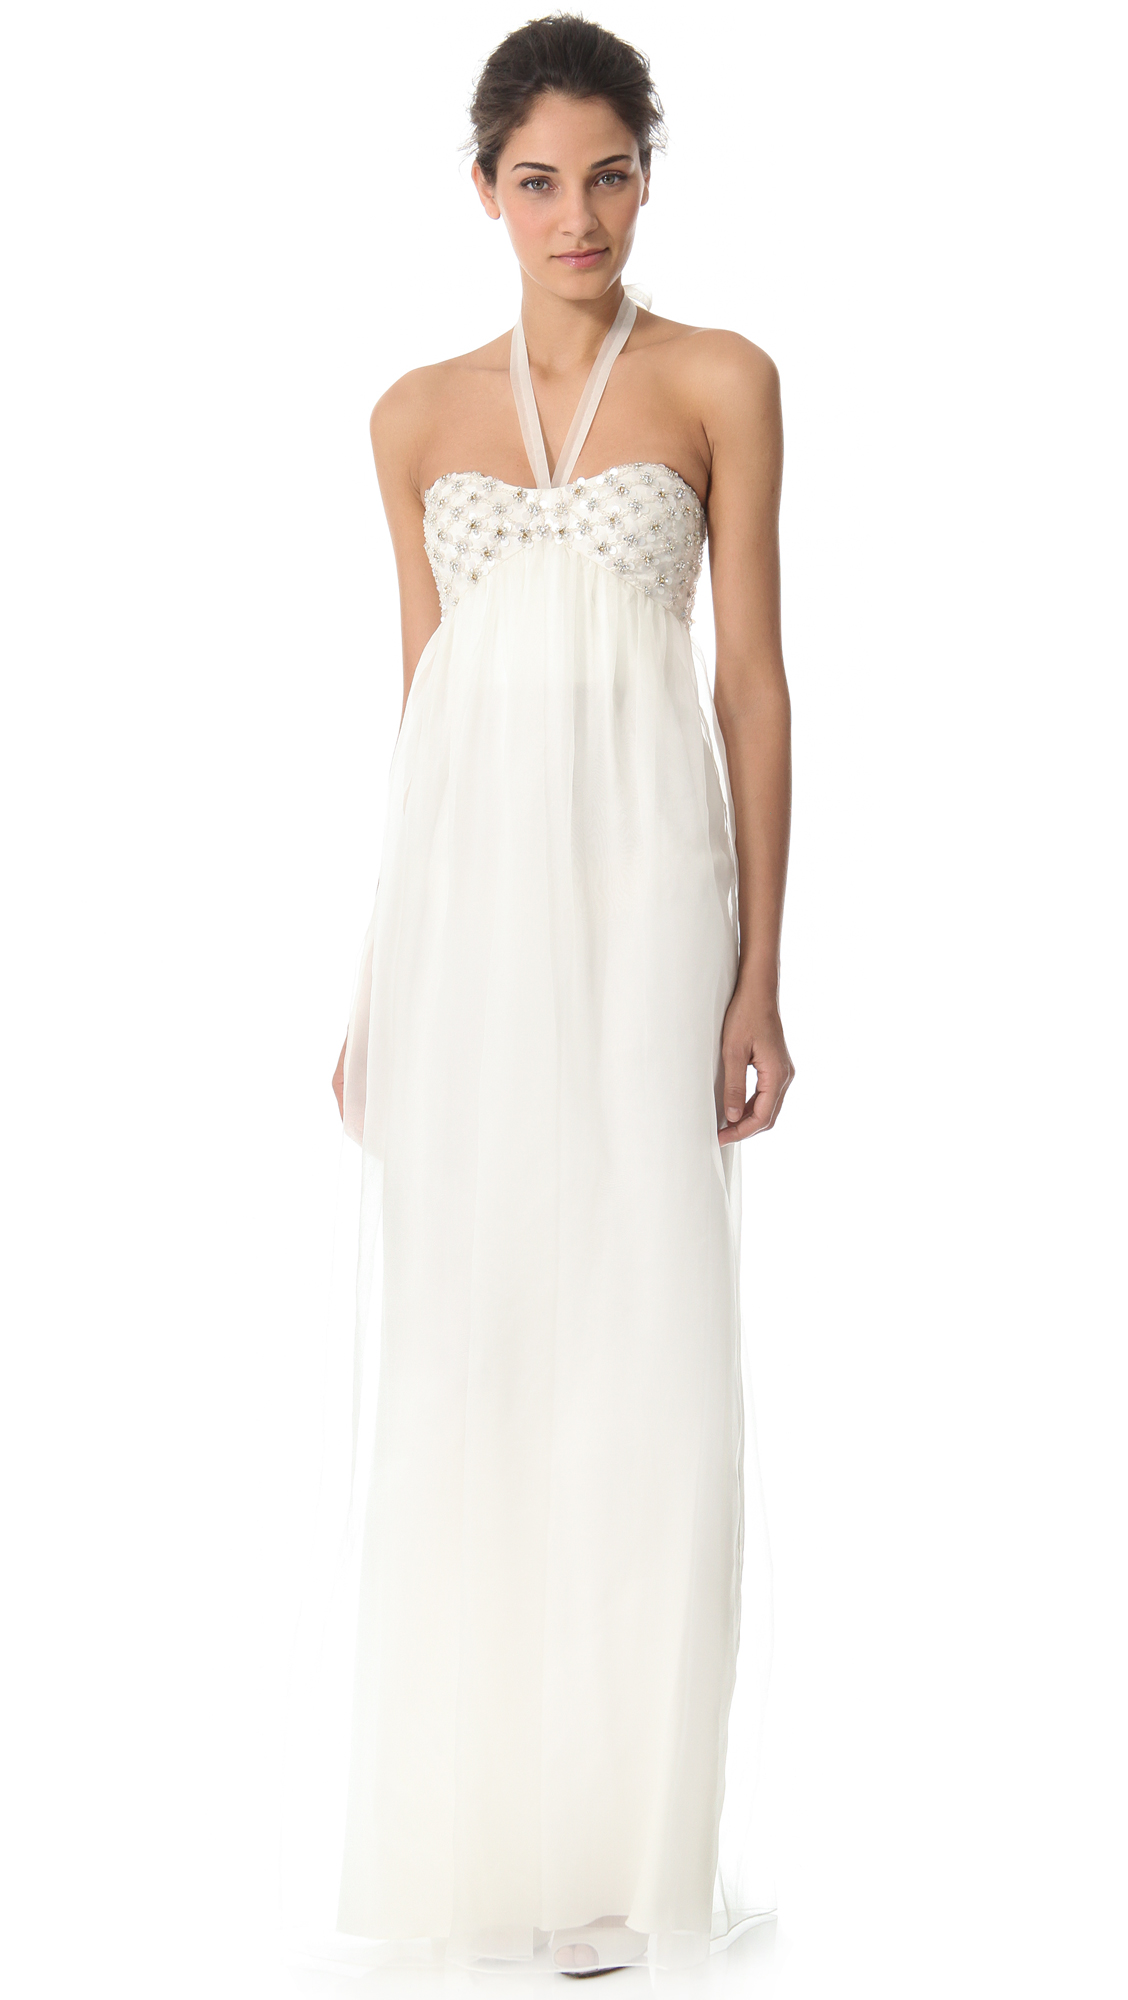 93caebb7a34a Temperley London Long Angeli Strapless Dress in White - Lyst